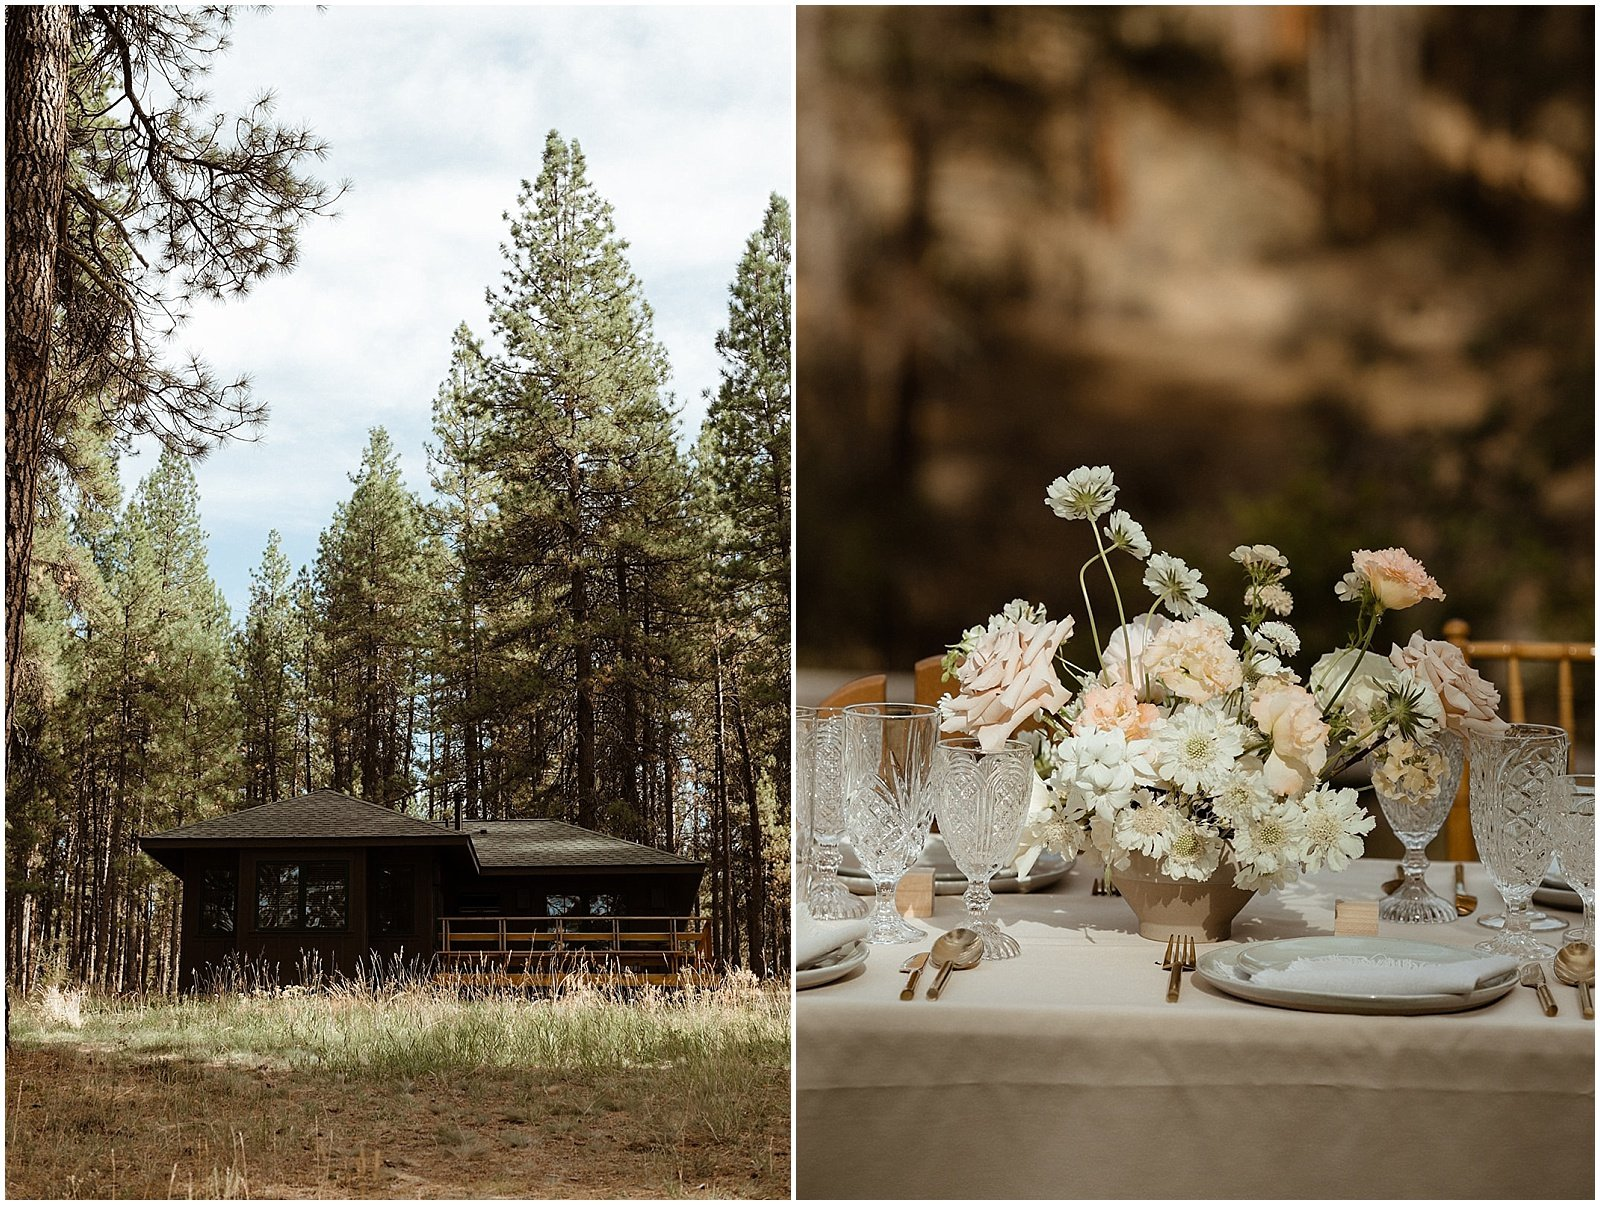 white and blush floral arrangements for an Oregon Wedding at House on Metolius